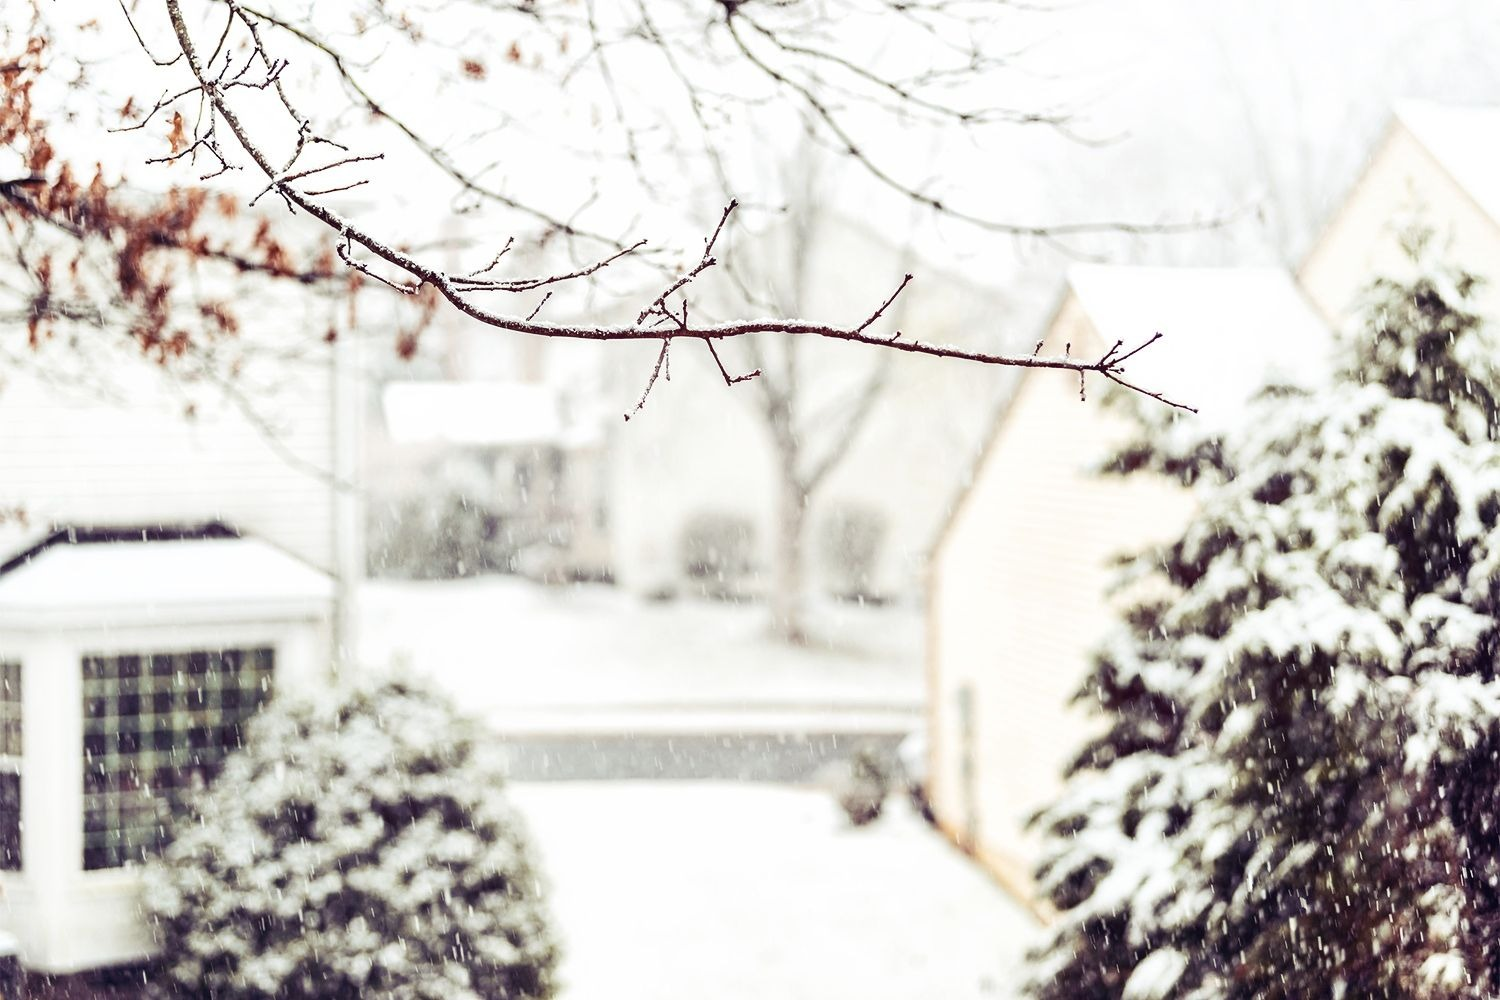 Seasonal Affective Disorder and Winter